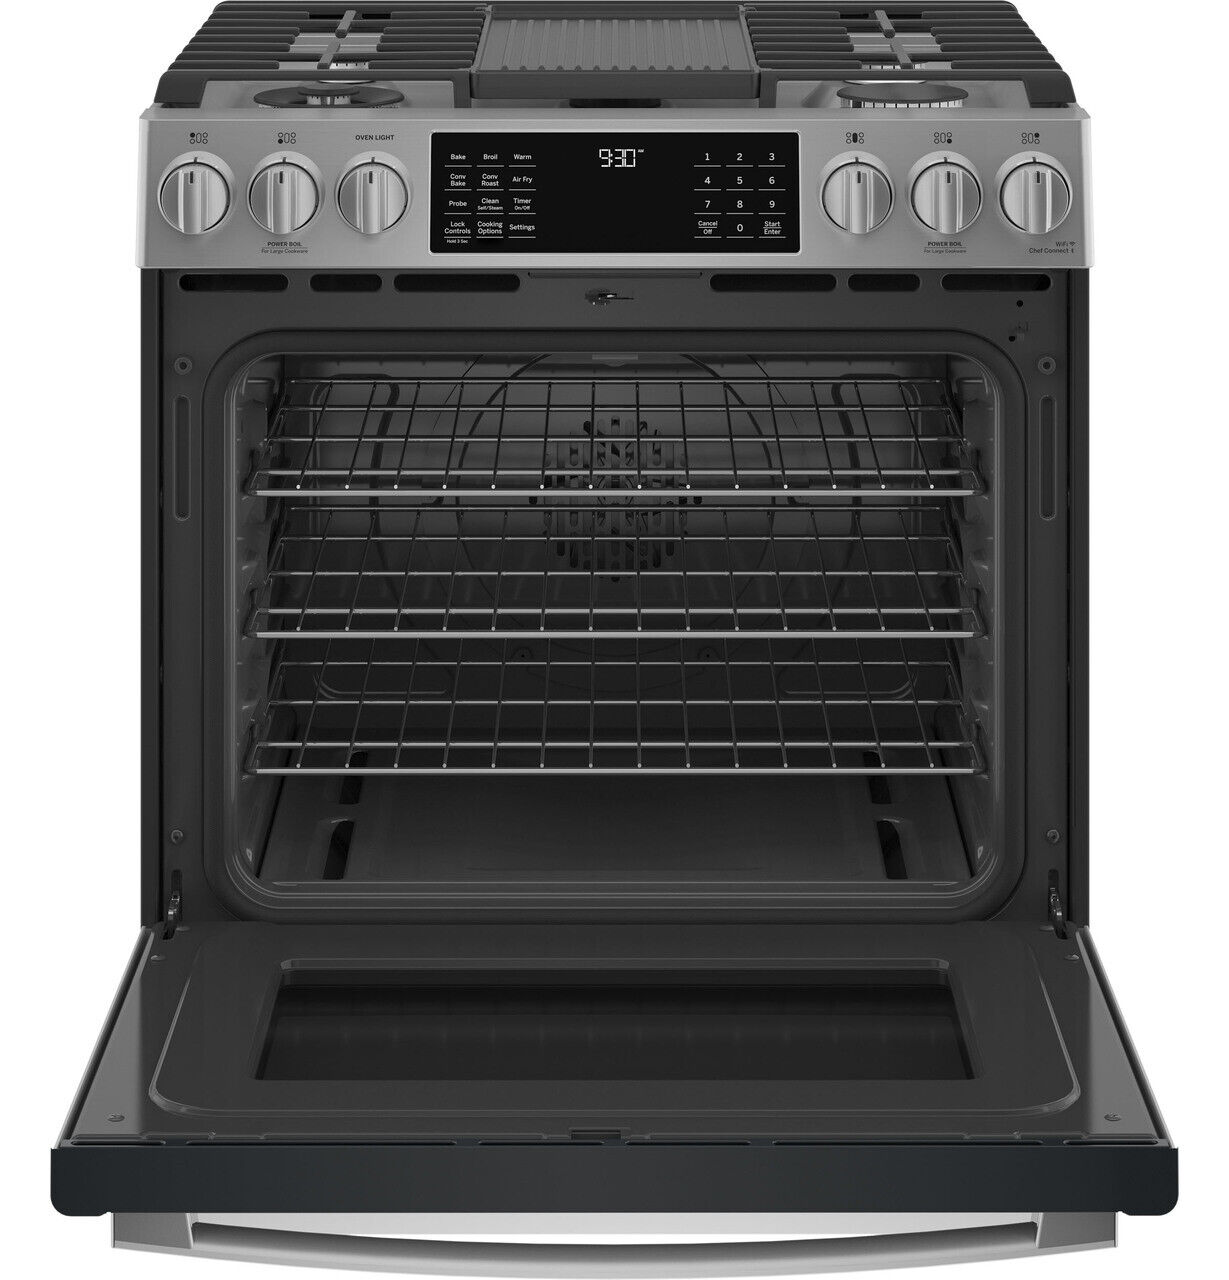 GE Profile PGS930YPFS 30 Inch Slide-In Gas Range With Air Fry In Stainless Steel - $2,499.99